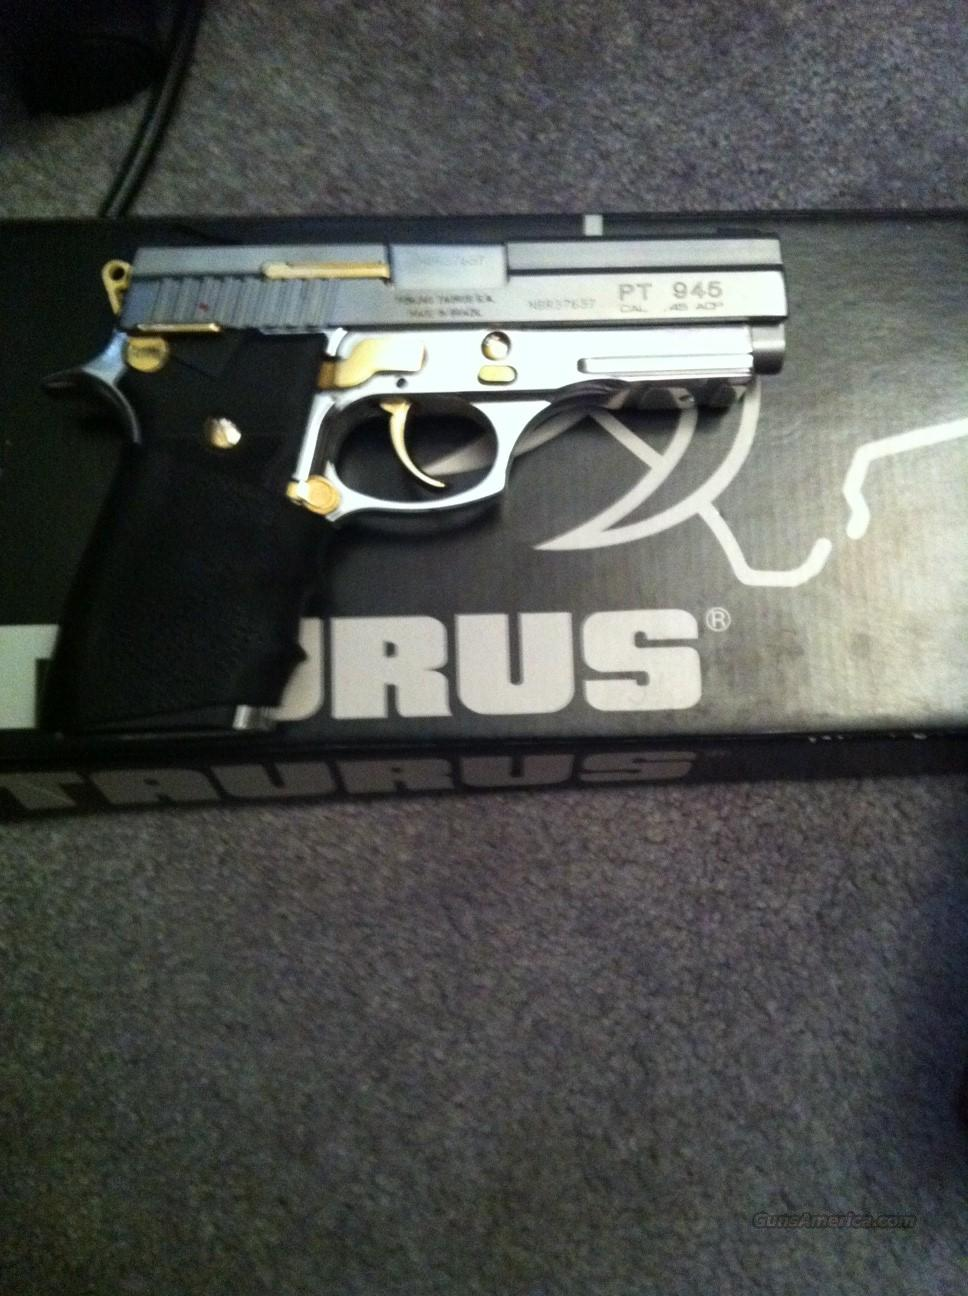 TAURUS PT945 .45 ACP WITH GOLD ACCENTS AND MOTHER OF PEARL GRIPS! AMMO INCLUDED!  Guns > Pistols > Taurus Pistols/Revolvers > Pistols > Steel Frame